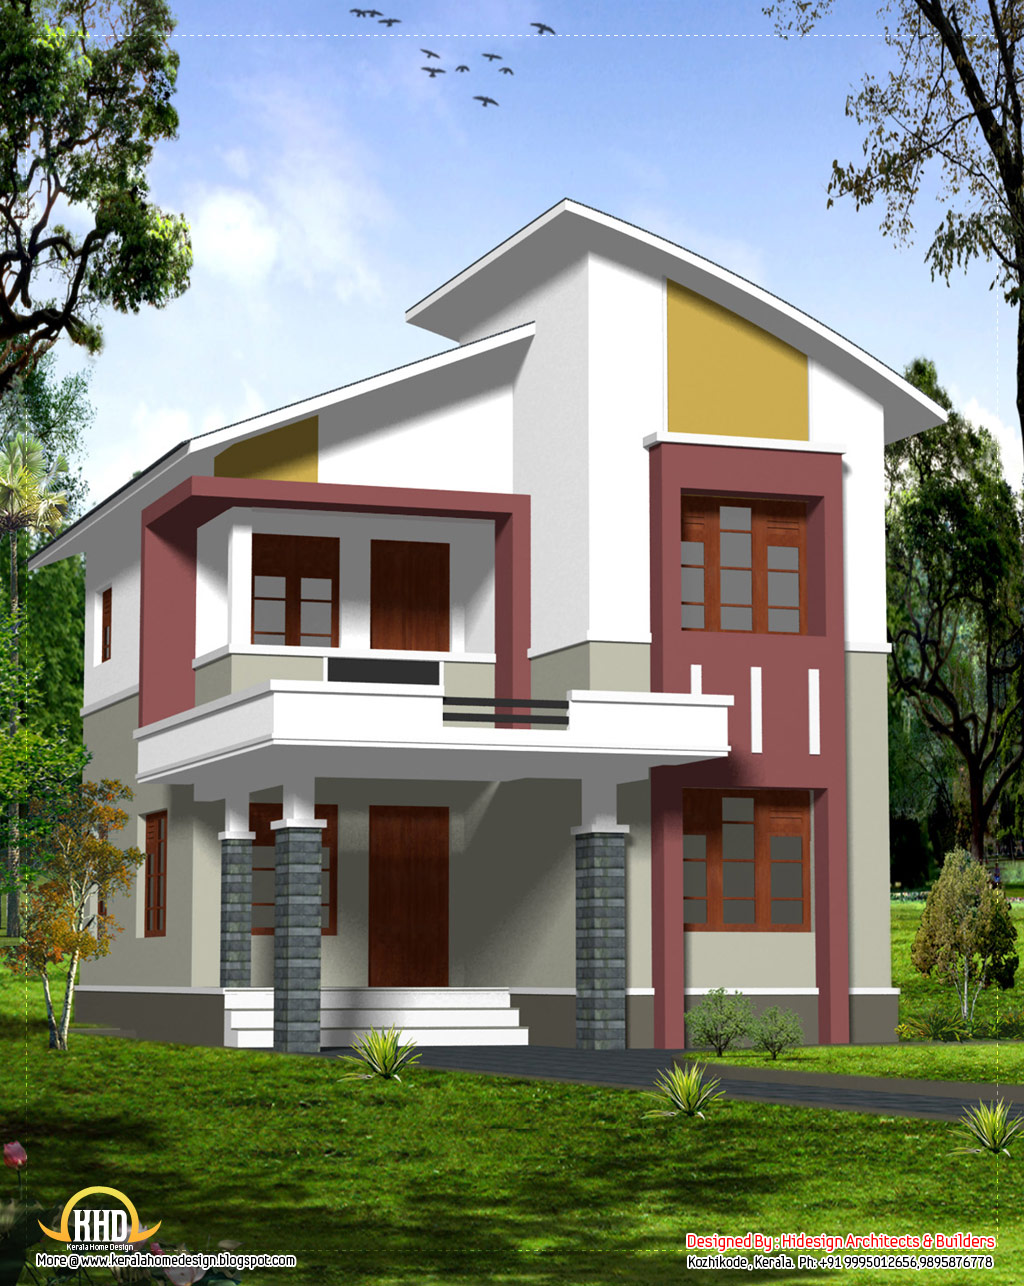 Budget home design 2140 sq ft kerala home design and for Home gallery design